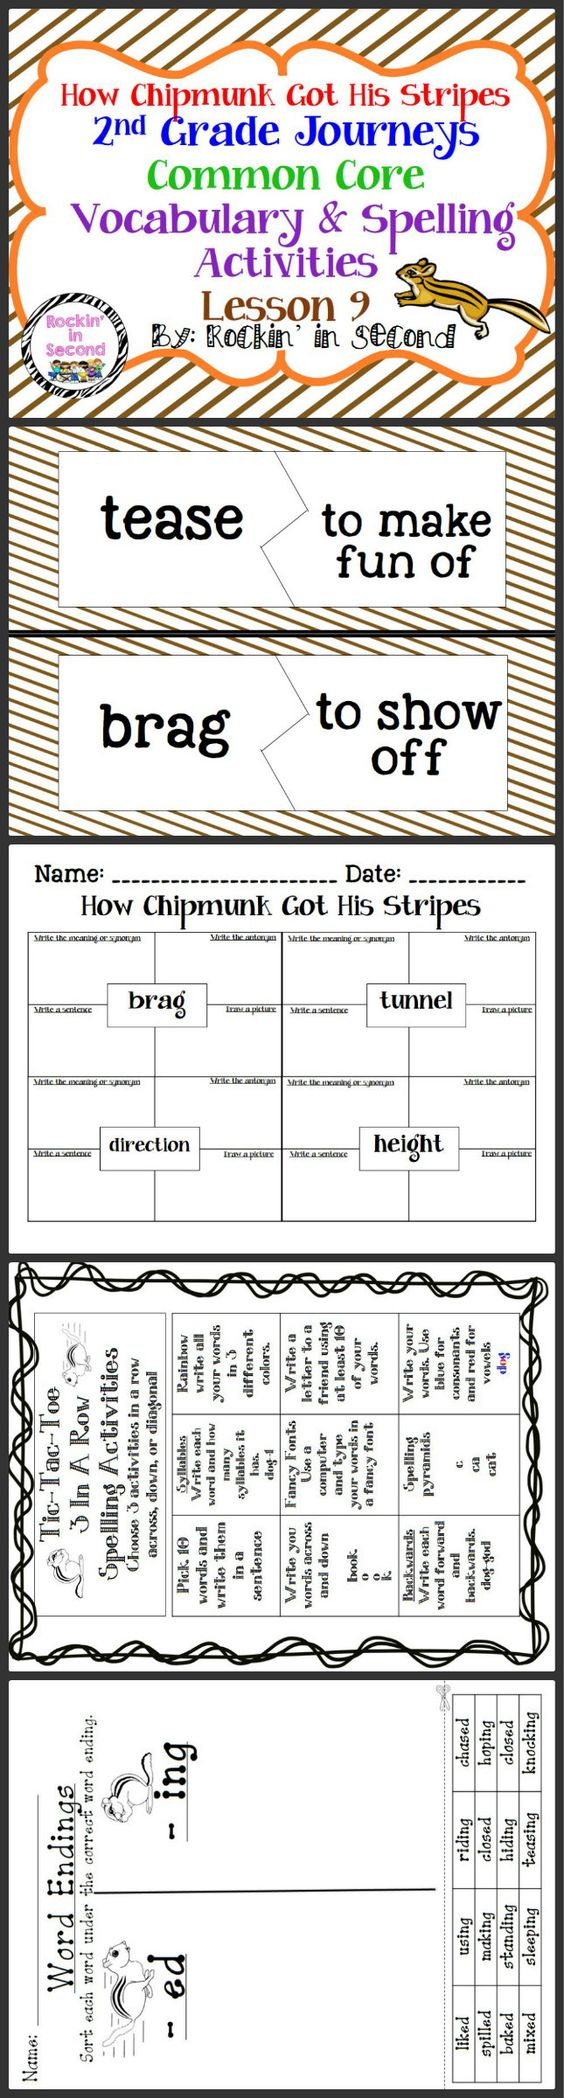 Worksheet Activities To Improve Vocabulary worksheet activities to improve vocabulary mikyu free pinterest the worlds catalog of ideas how chipmunk got his stripes